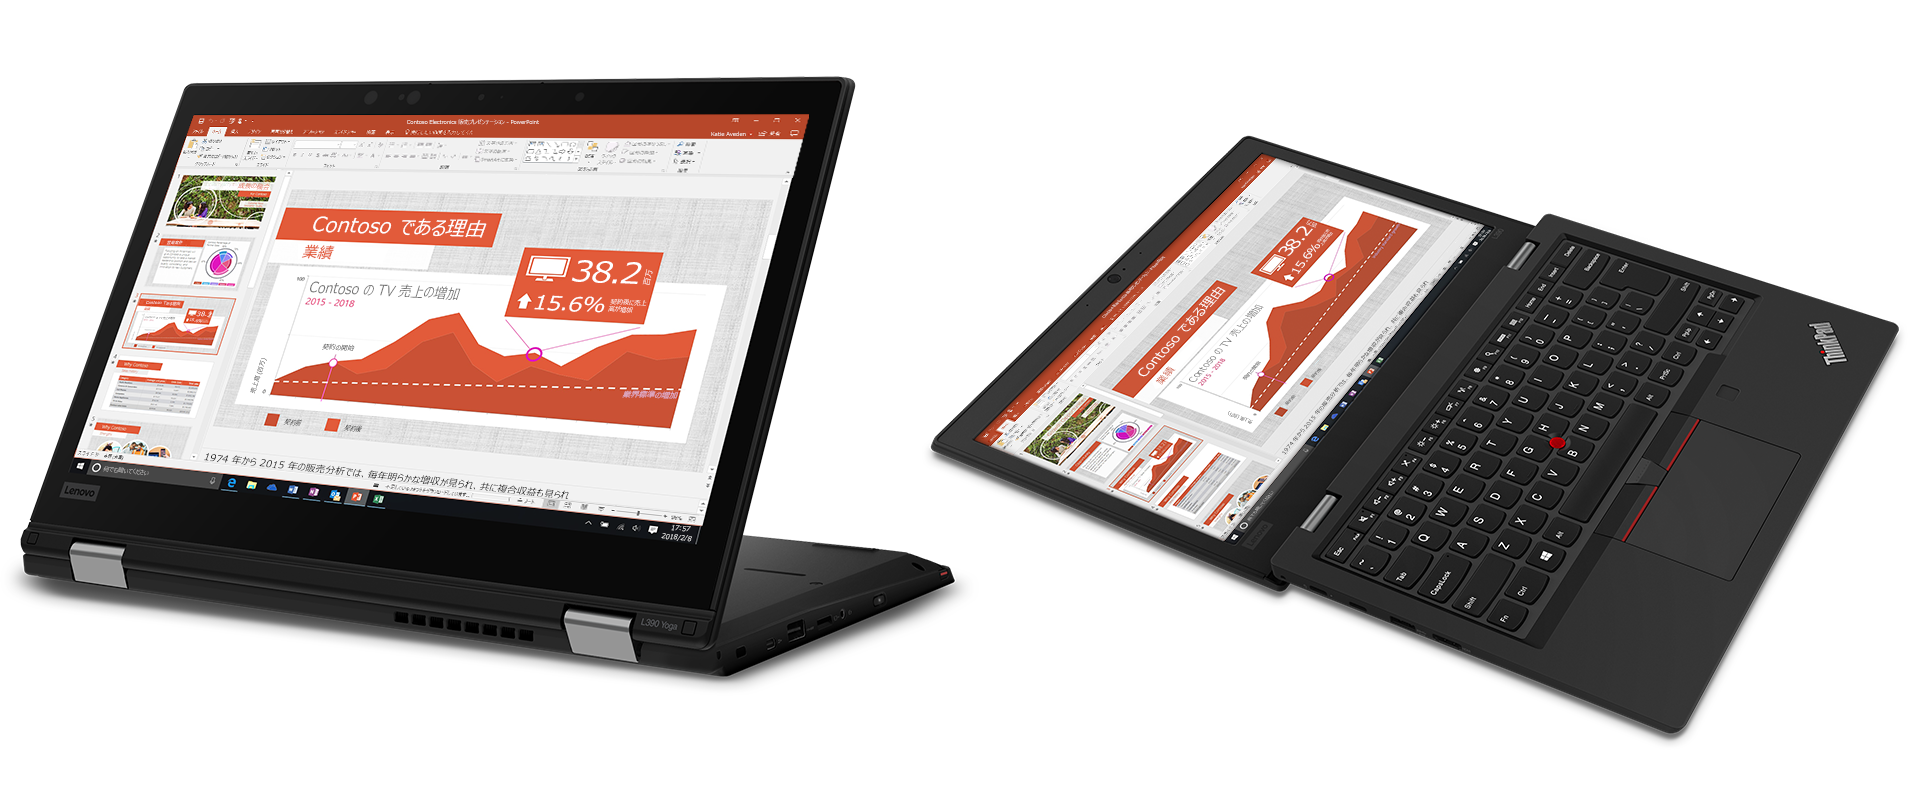 Lenovo ThinkPad L390 と L390 Yoga の画像。